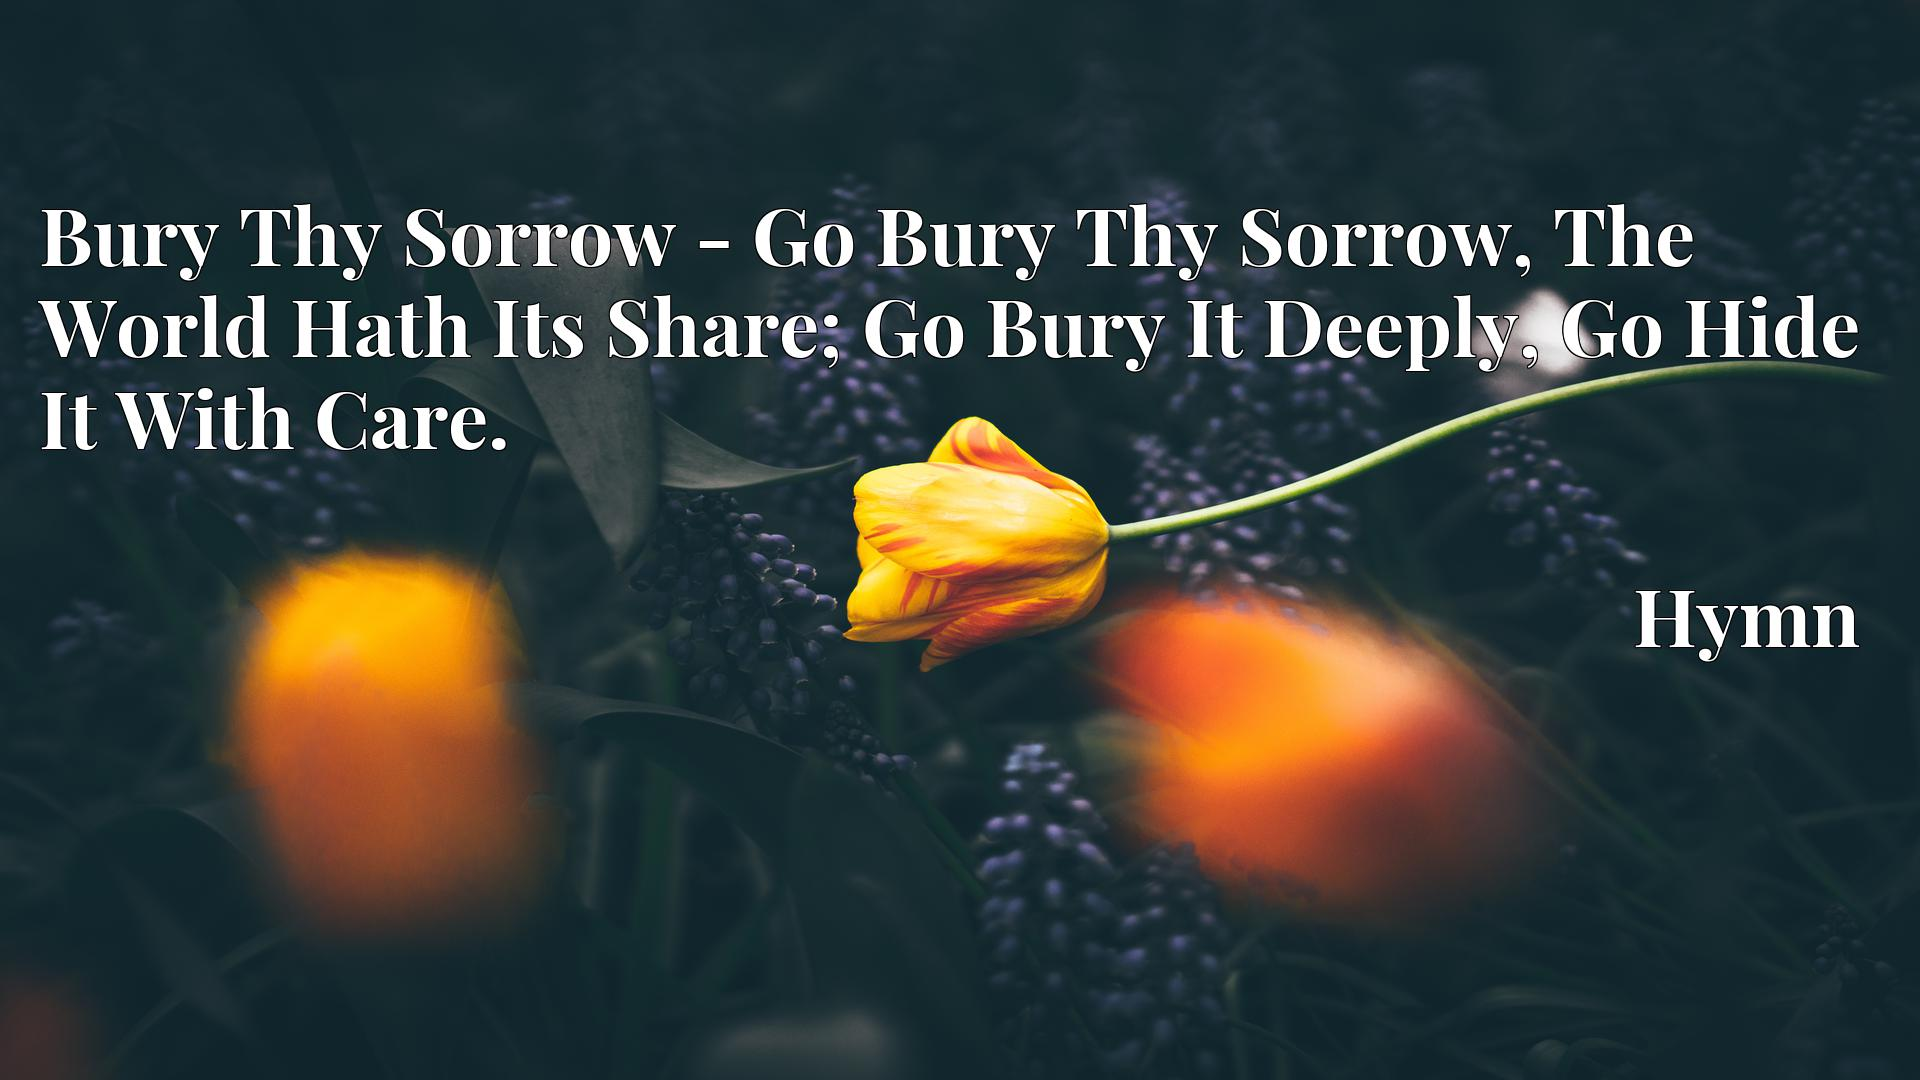 Bury Thy Sorrow - Go Bury Thy Sorrow, The World Hath Its Share; Go Bury It Deeply, Go Hide It With Care. - Hymn